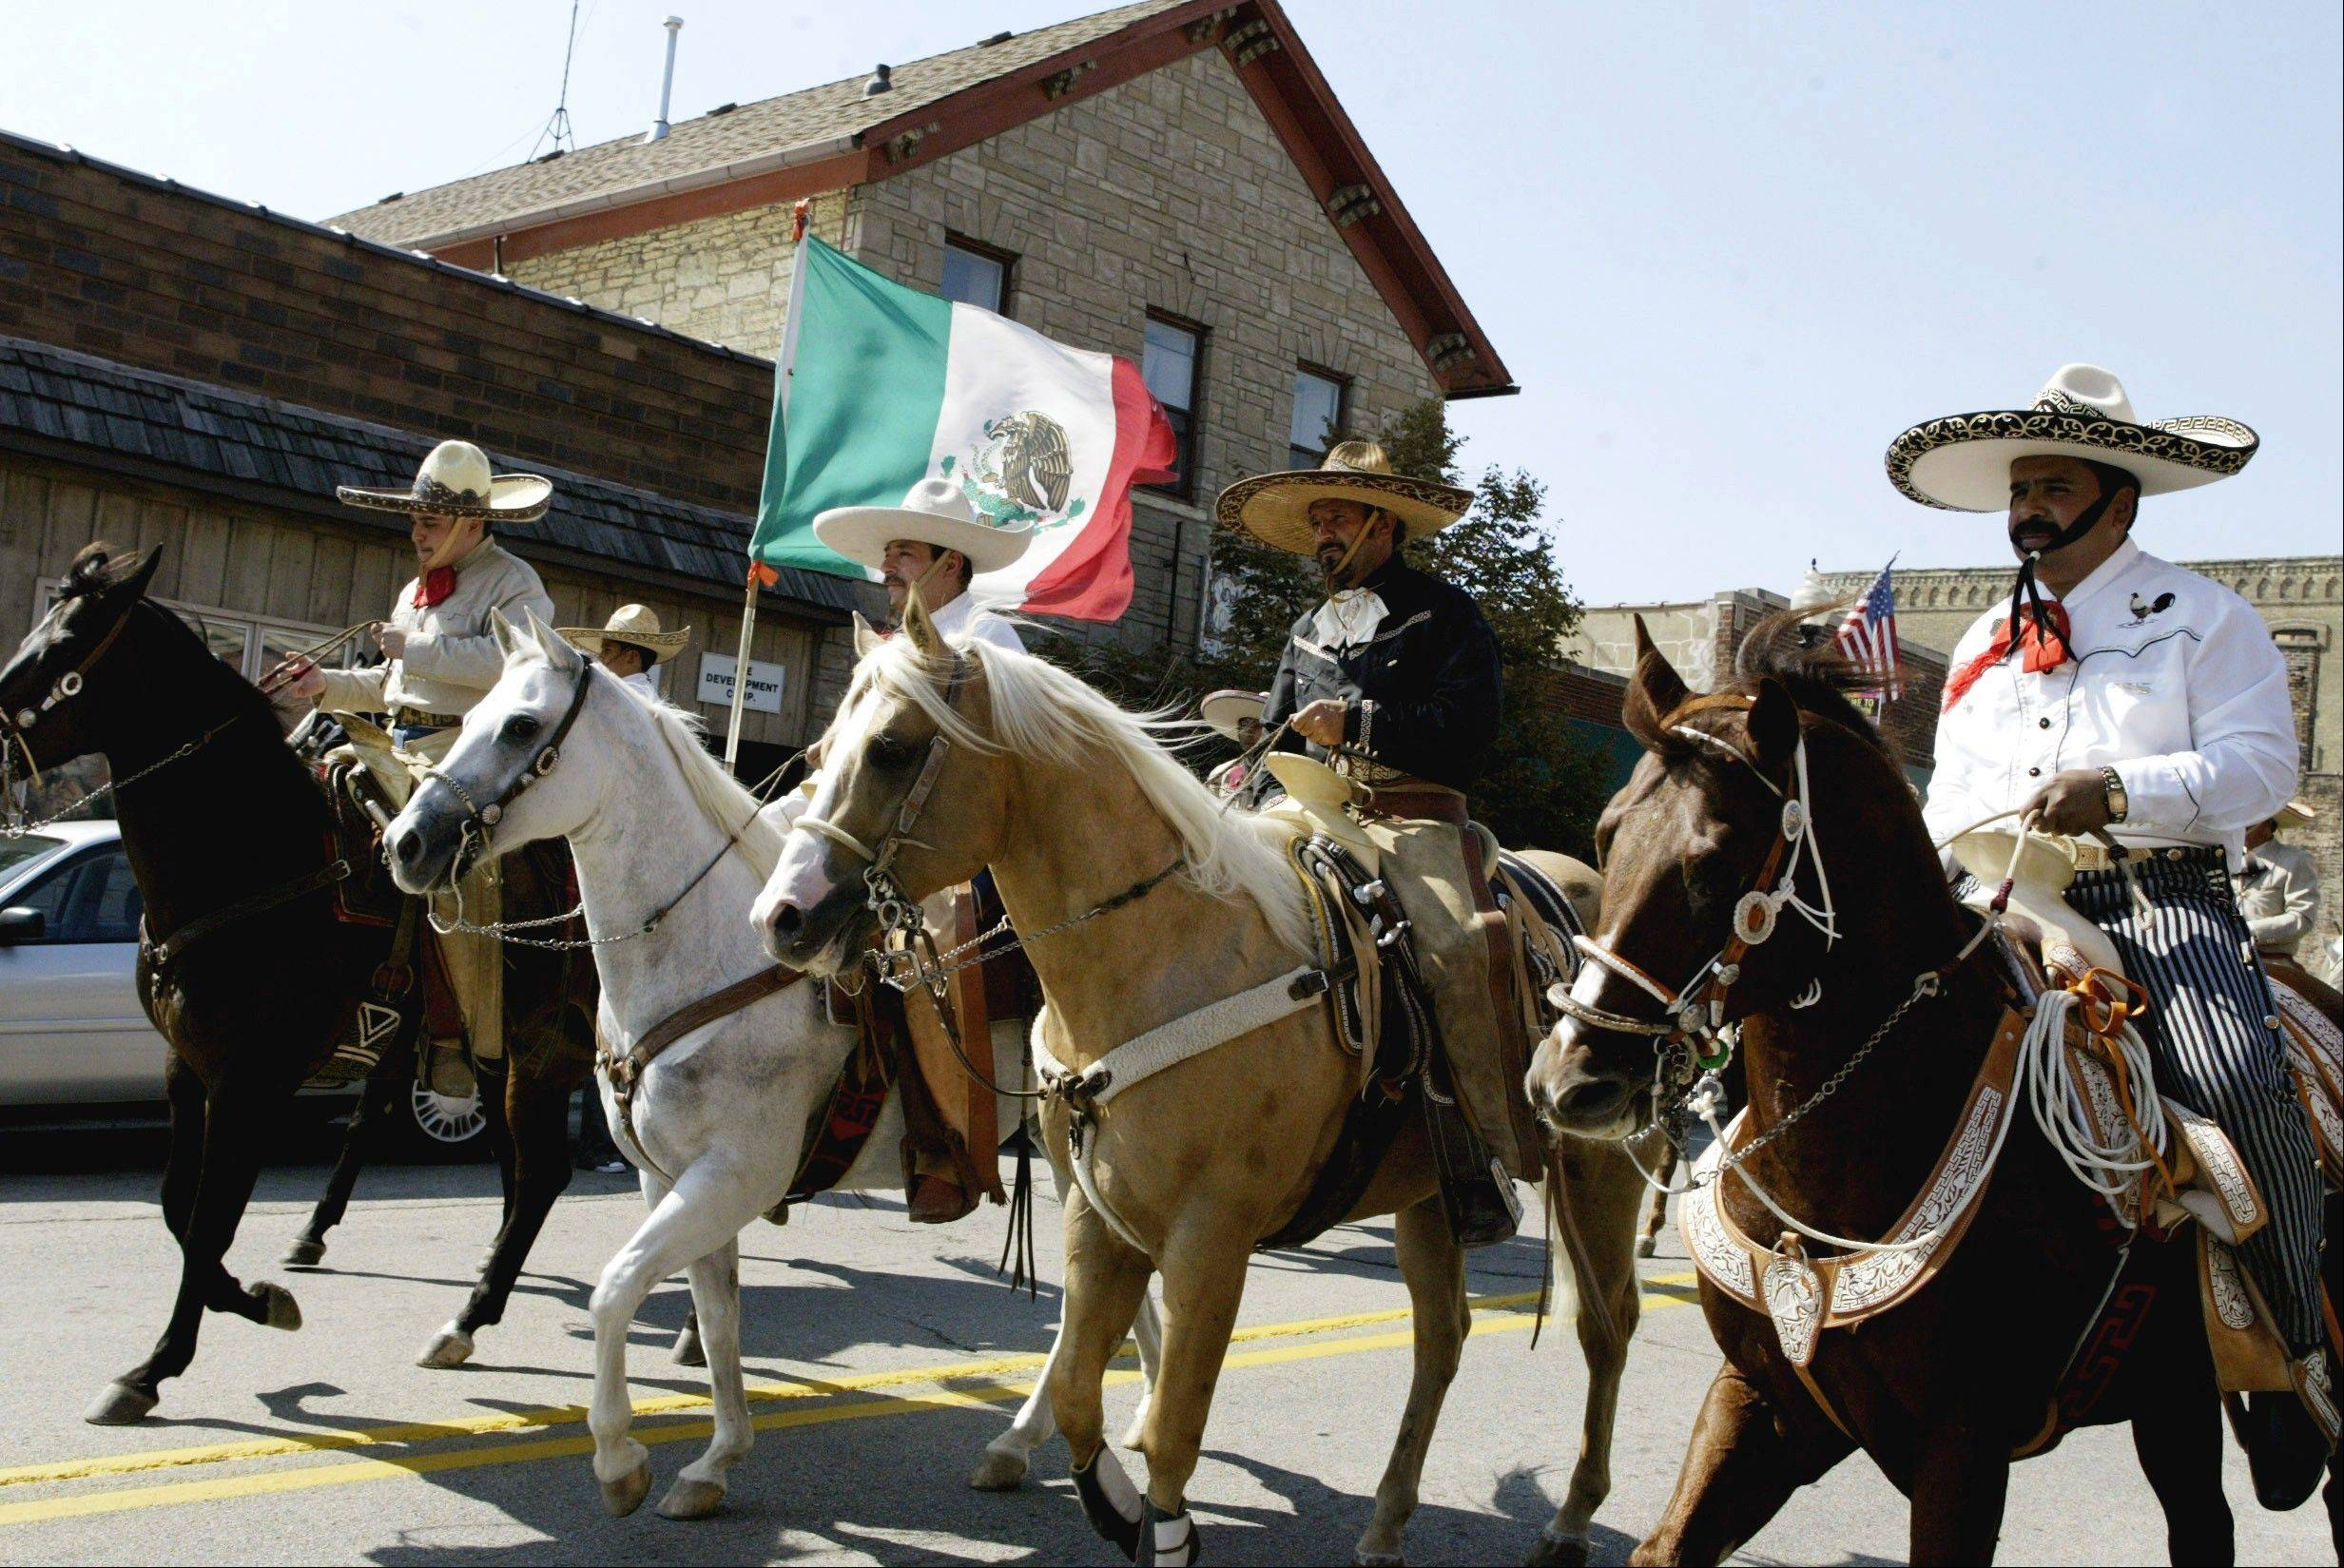 West Chicago has canceled plans for its annual celebration of Mexican Independence Day citing a lack of volunteer and vendor support.